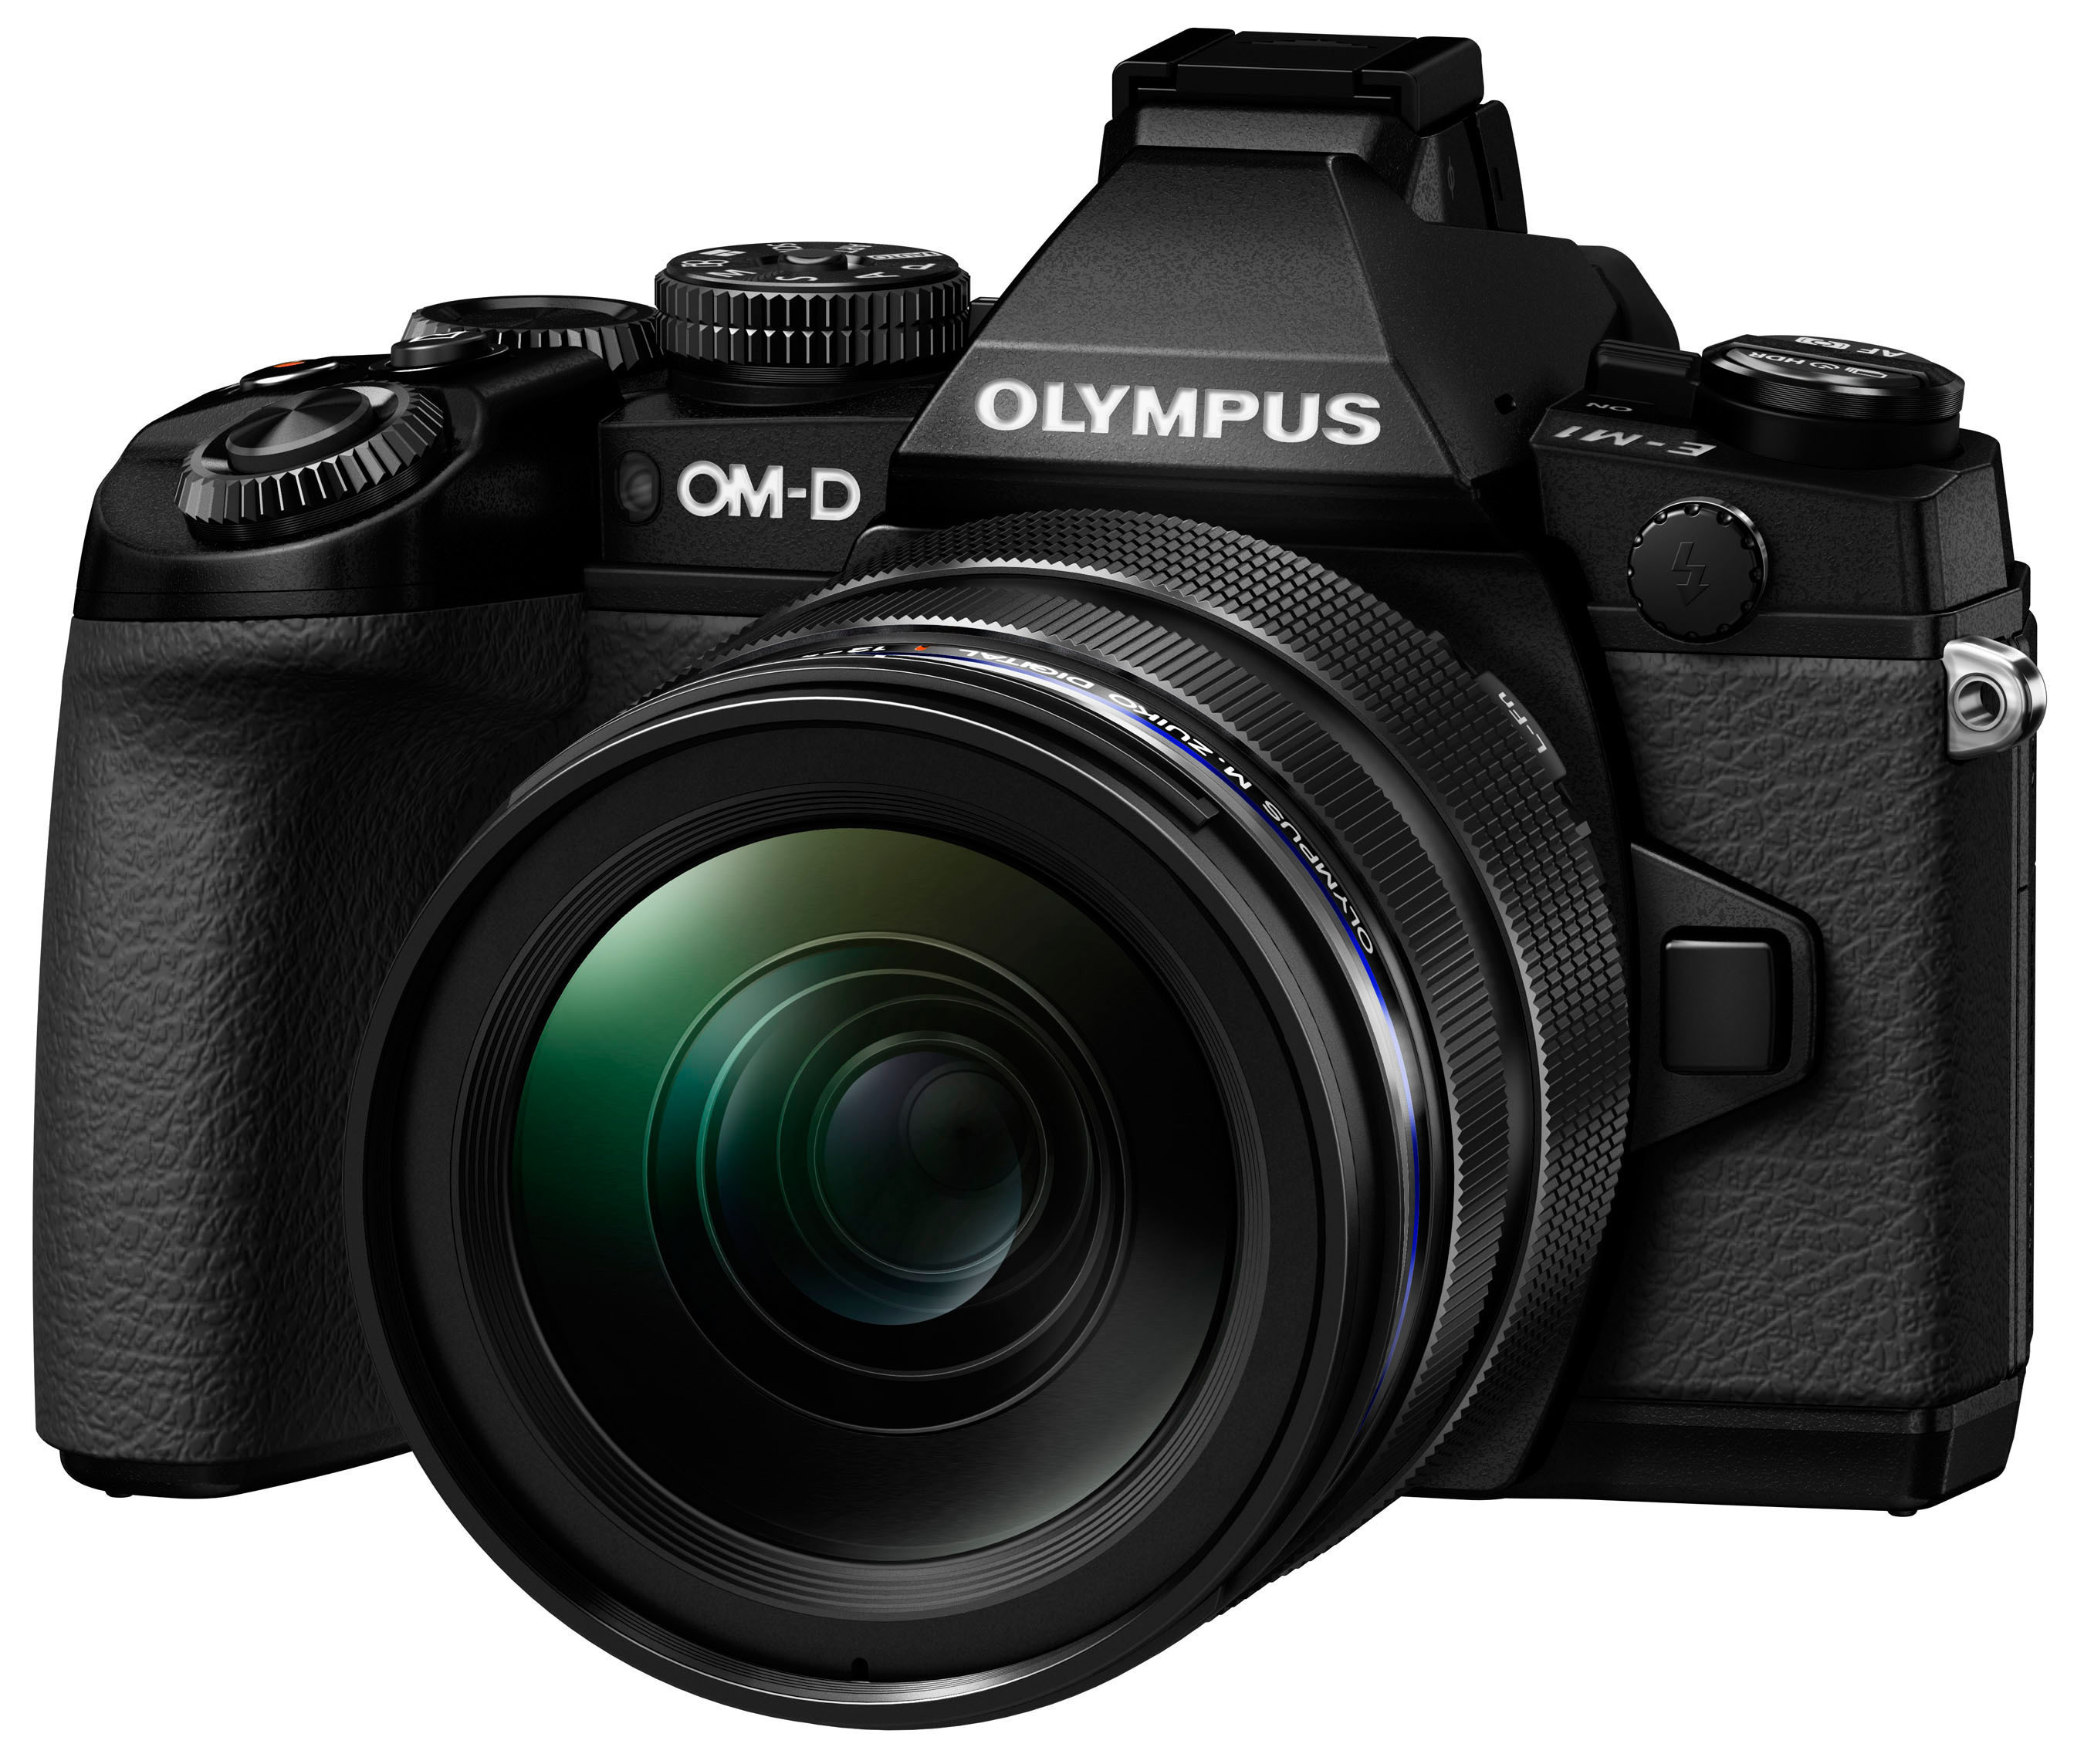 Olympus introduces the OM-D E-M1(R), its new premium flagship camera and worthy successor to its E-5 DSLR. As powerful as a pro DSLR, the E-M1 is a compact system camera with a revolutionary design made for advanced photographers who demand incredible speed and image quality in a lightweight go-anywhere durable body. (PRNewsFoto/Olympus Imaging America Inc.) (PRNewsFoto/OLYMPUS IMAGING AMERICA INC.)